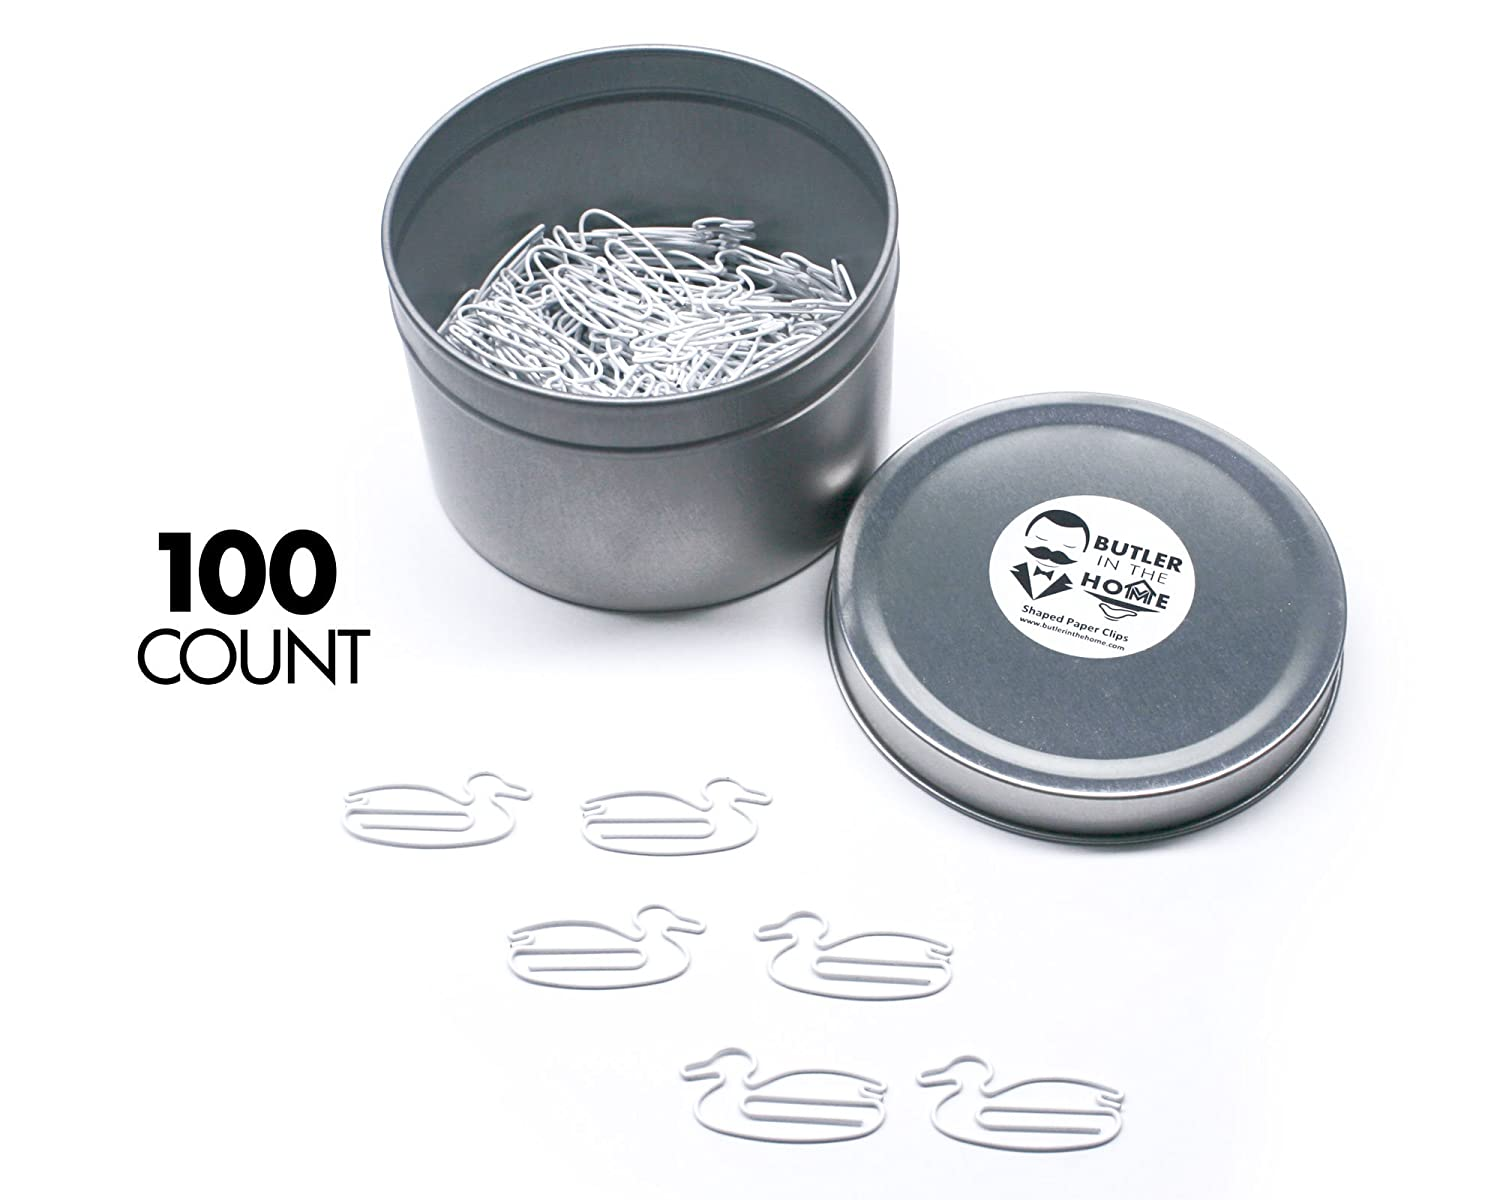 Butler in the Home Duck Shaped Paper Clips Great For Paper Clip Collectors or Office Gift - Comes in Round Tin with Lid and Gift Box (White 100 Count)